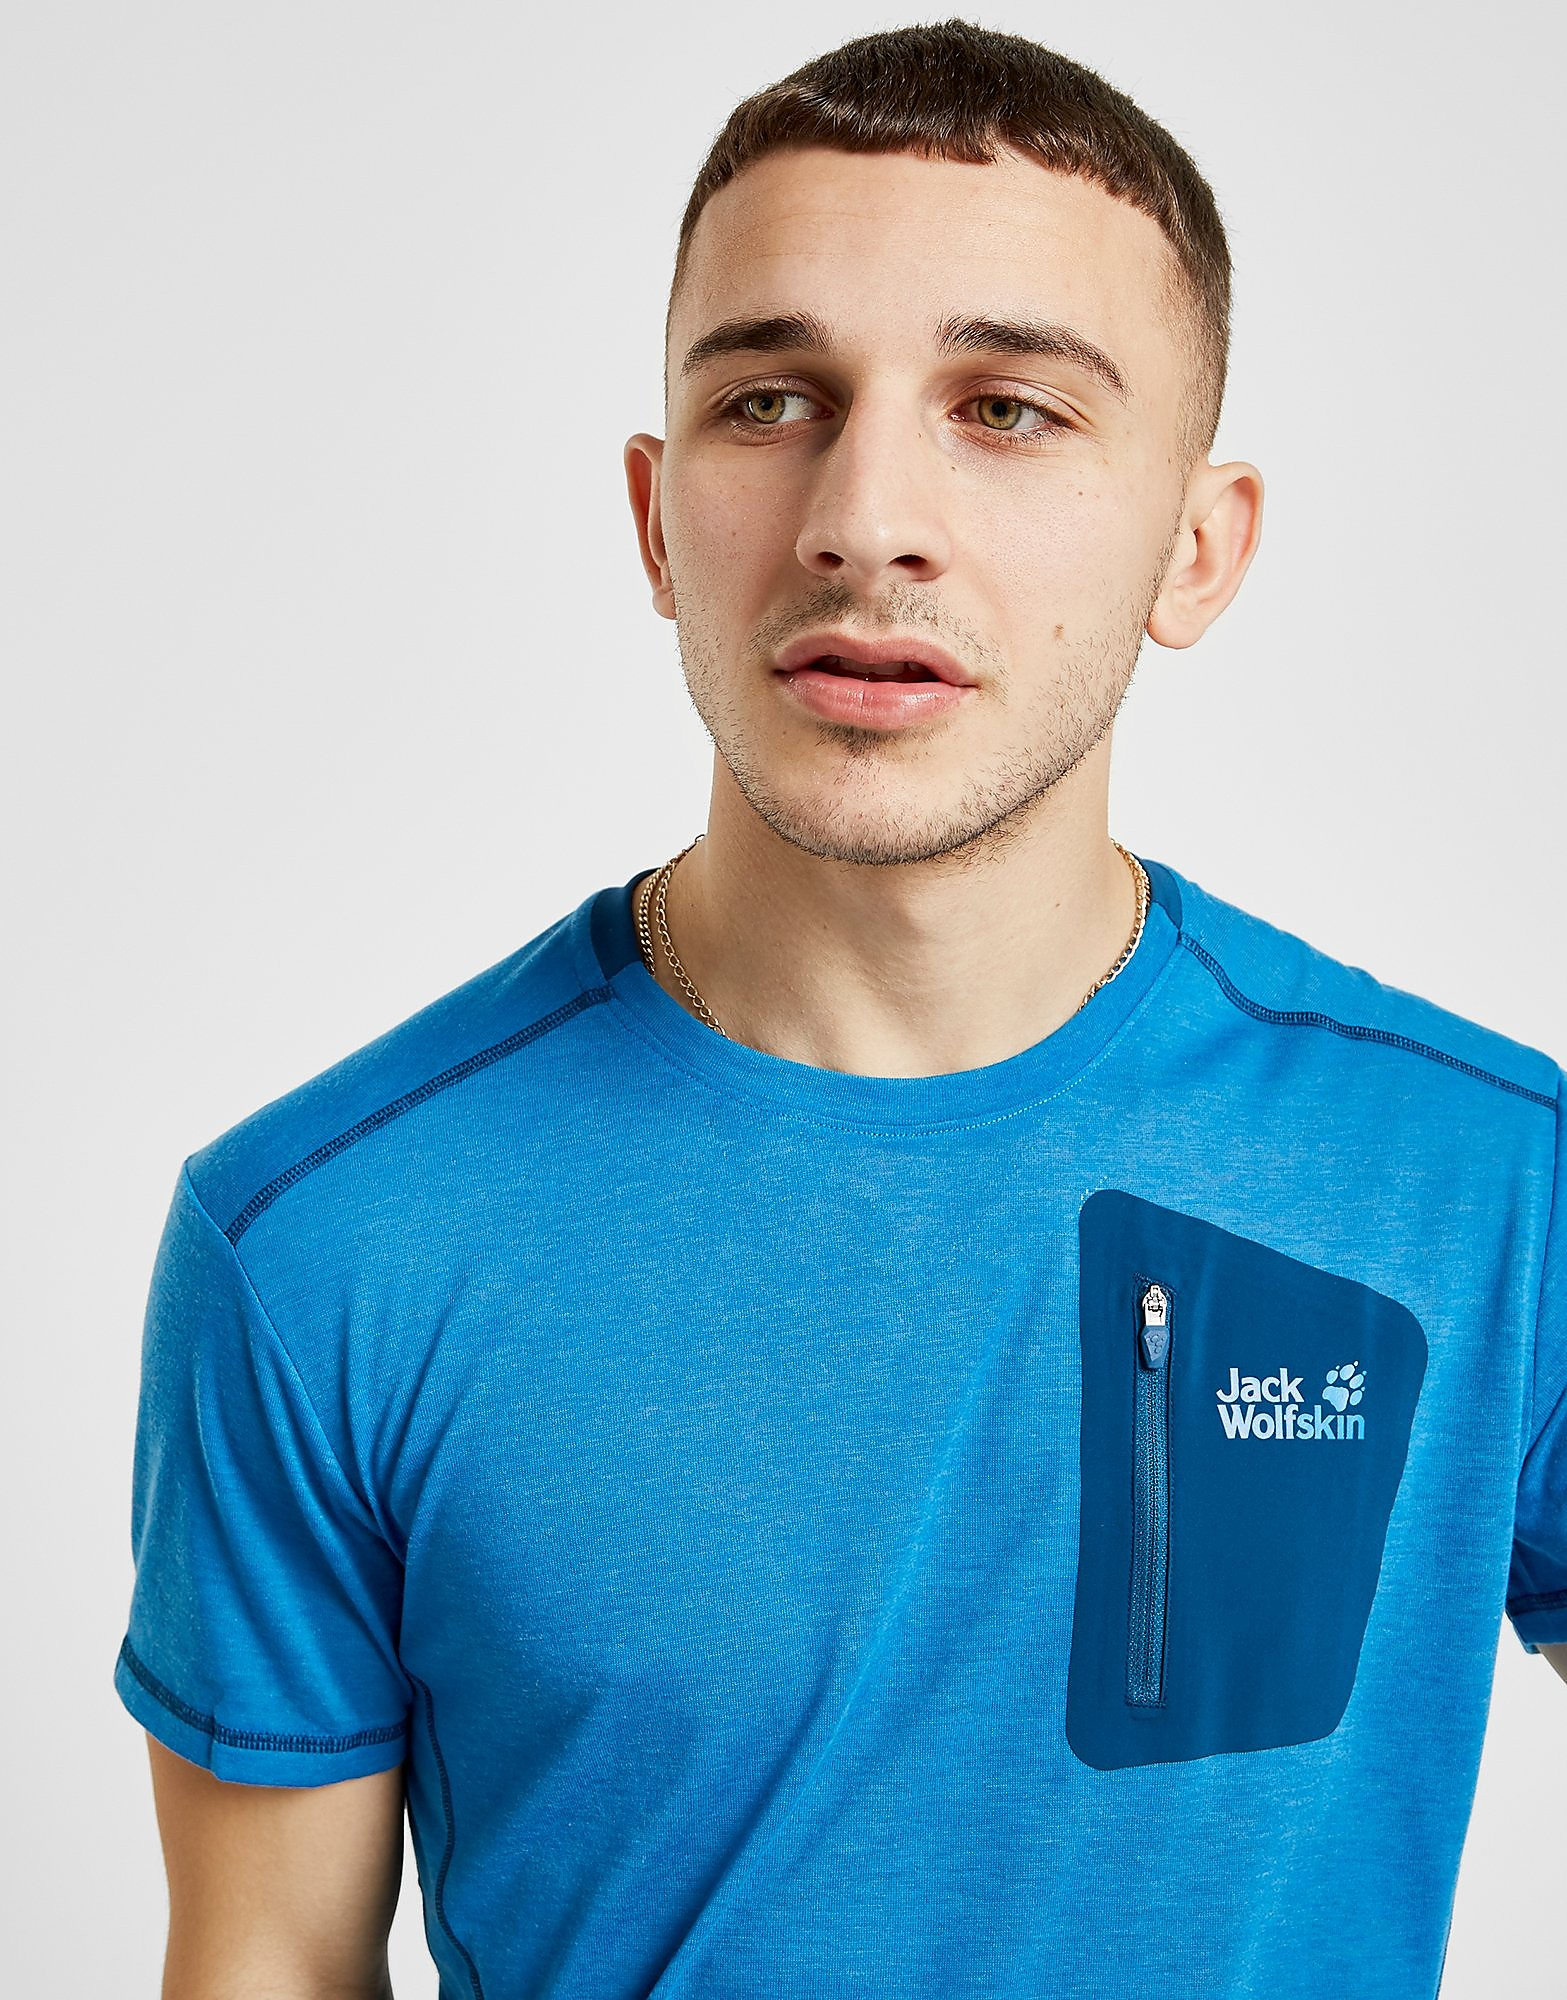 Jack Wolfskin Knit Woven Pocket T-Shirt Heren - Blauw - Heren